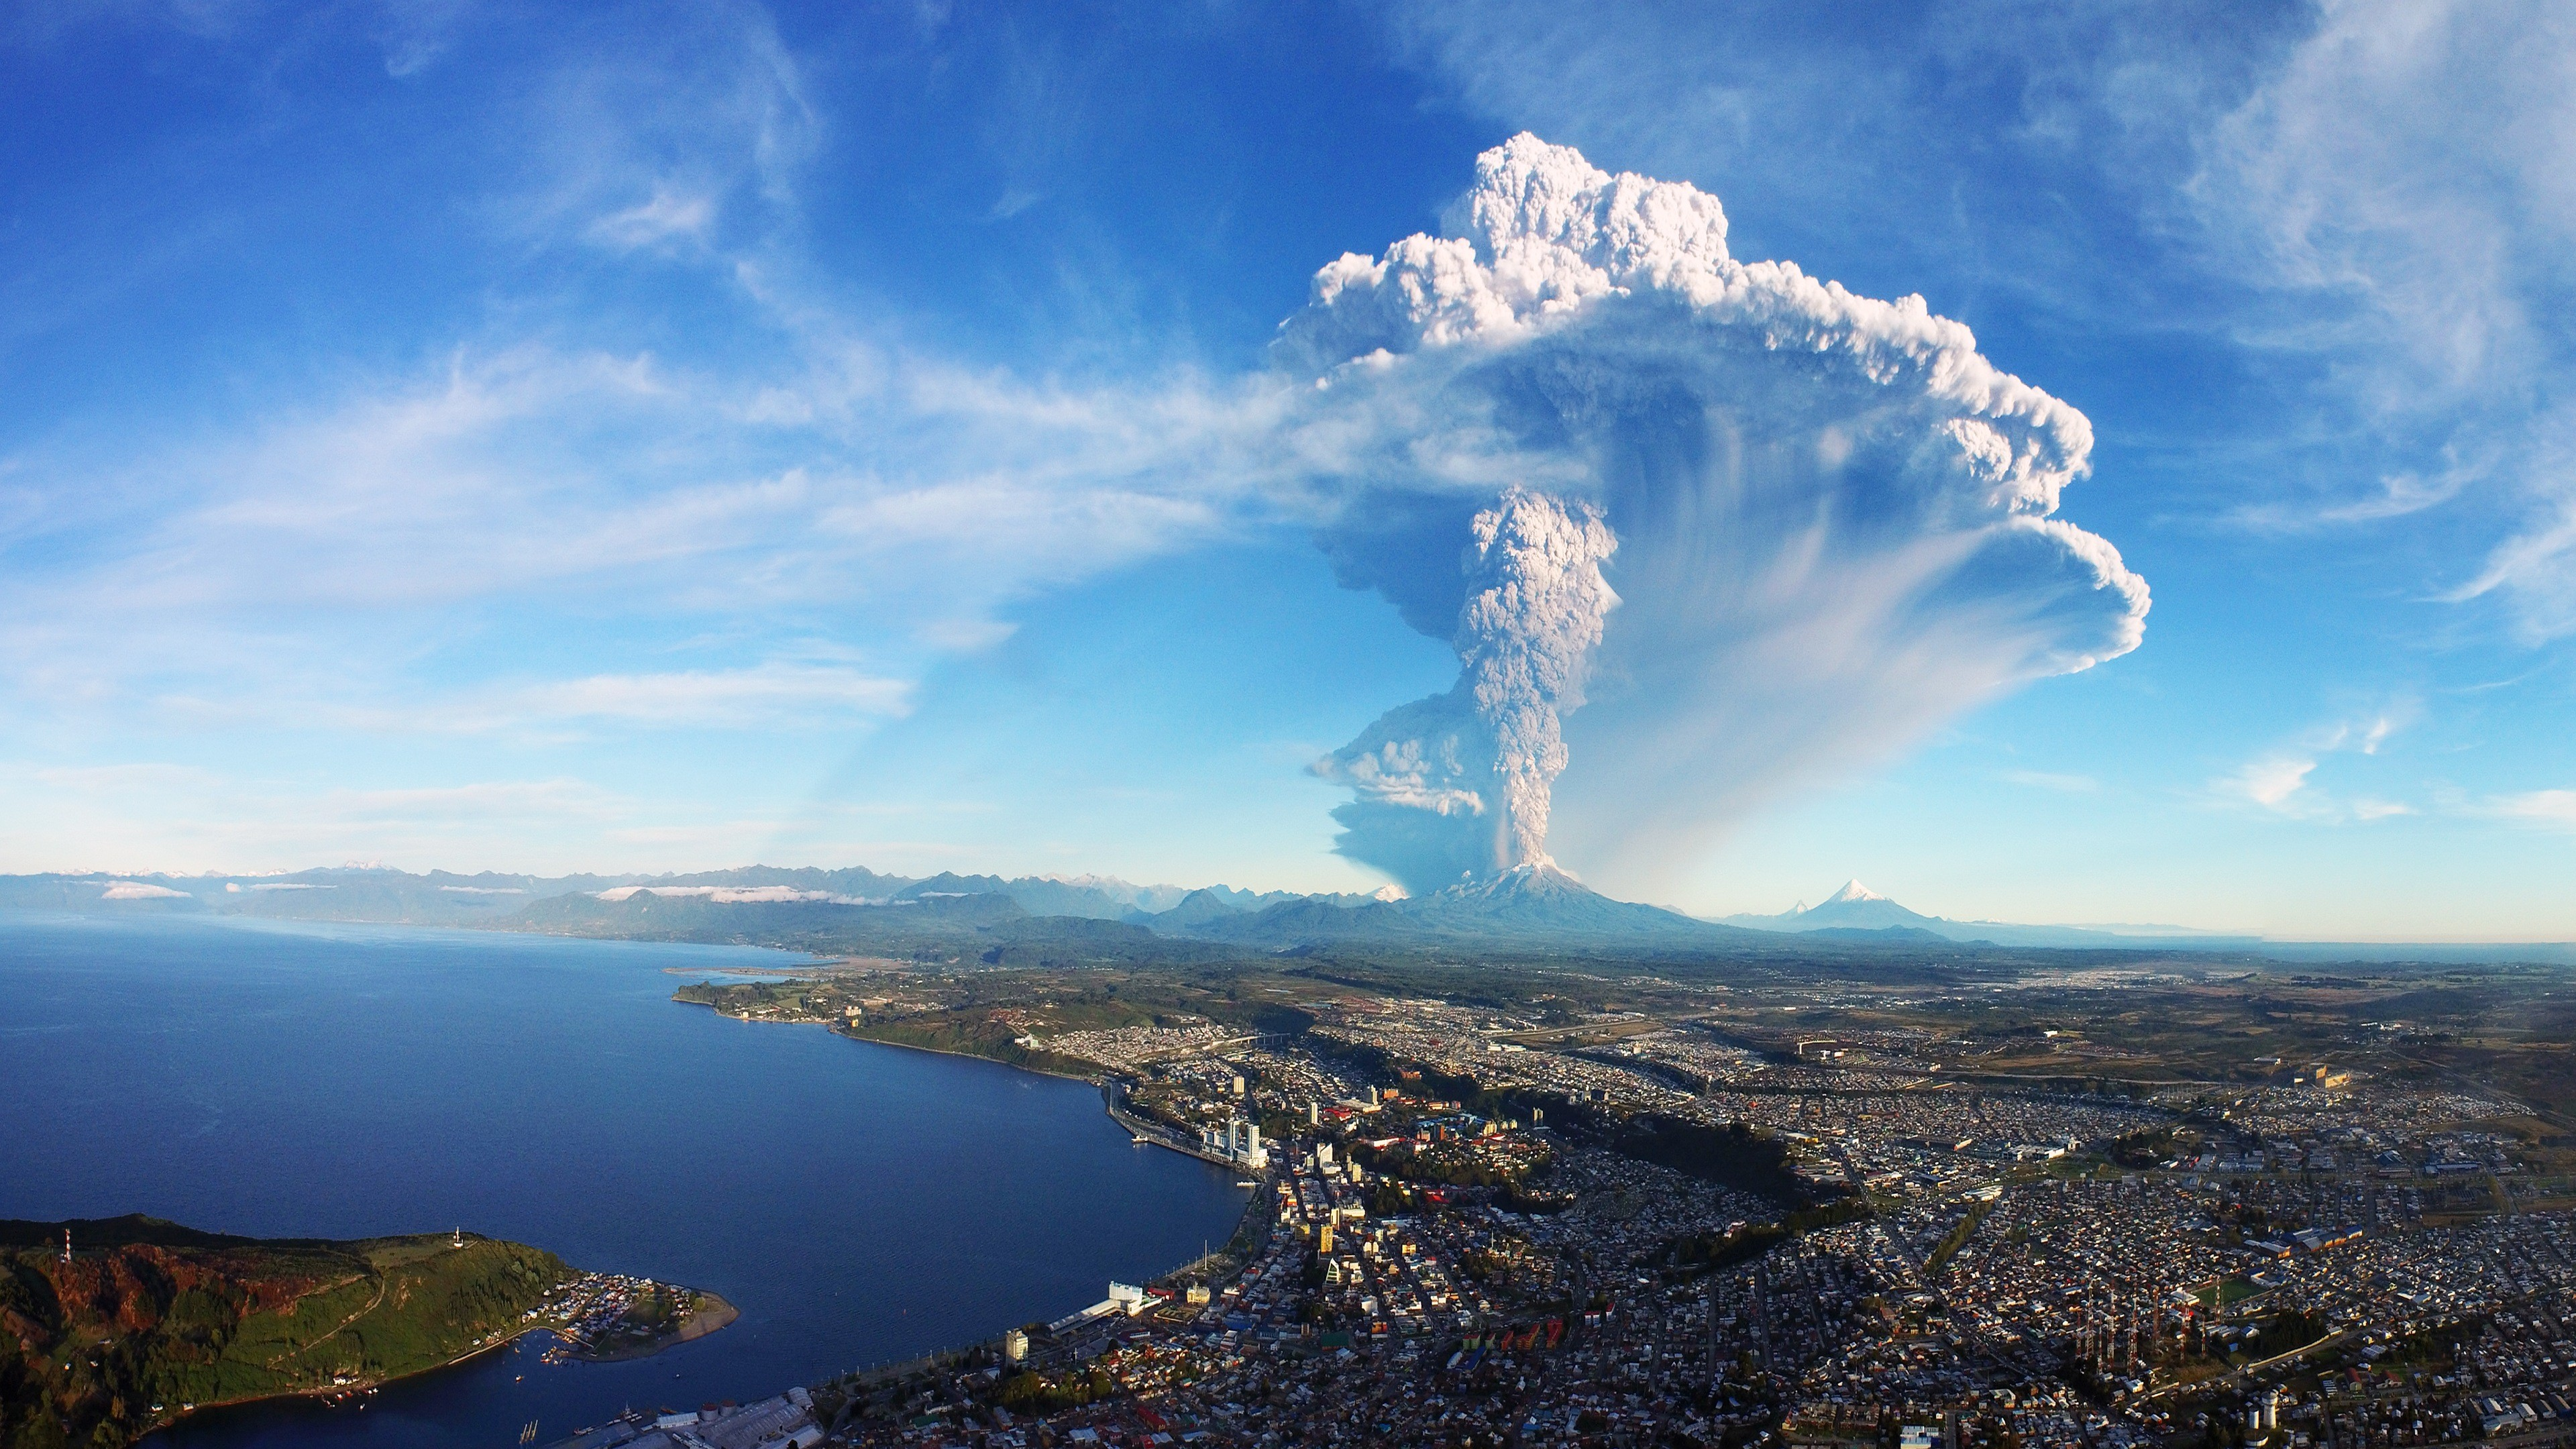 Res: 3840x2160, Calbuco Volcano Eruption Chile 4K Ultra HD Desktop Wallpaper Uploaded by  DesktopWalls